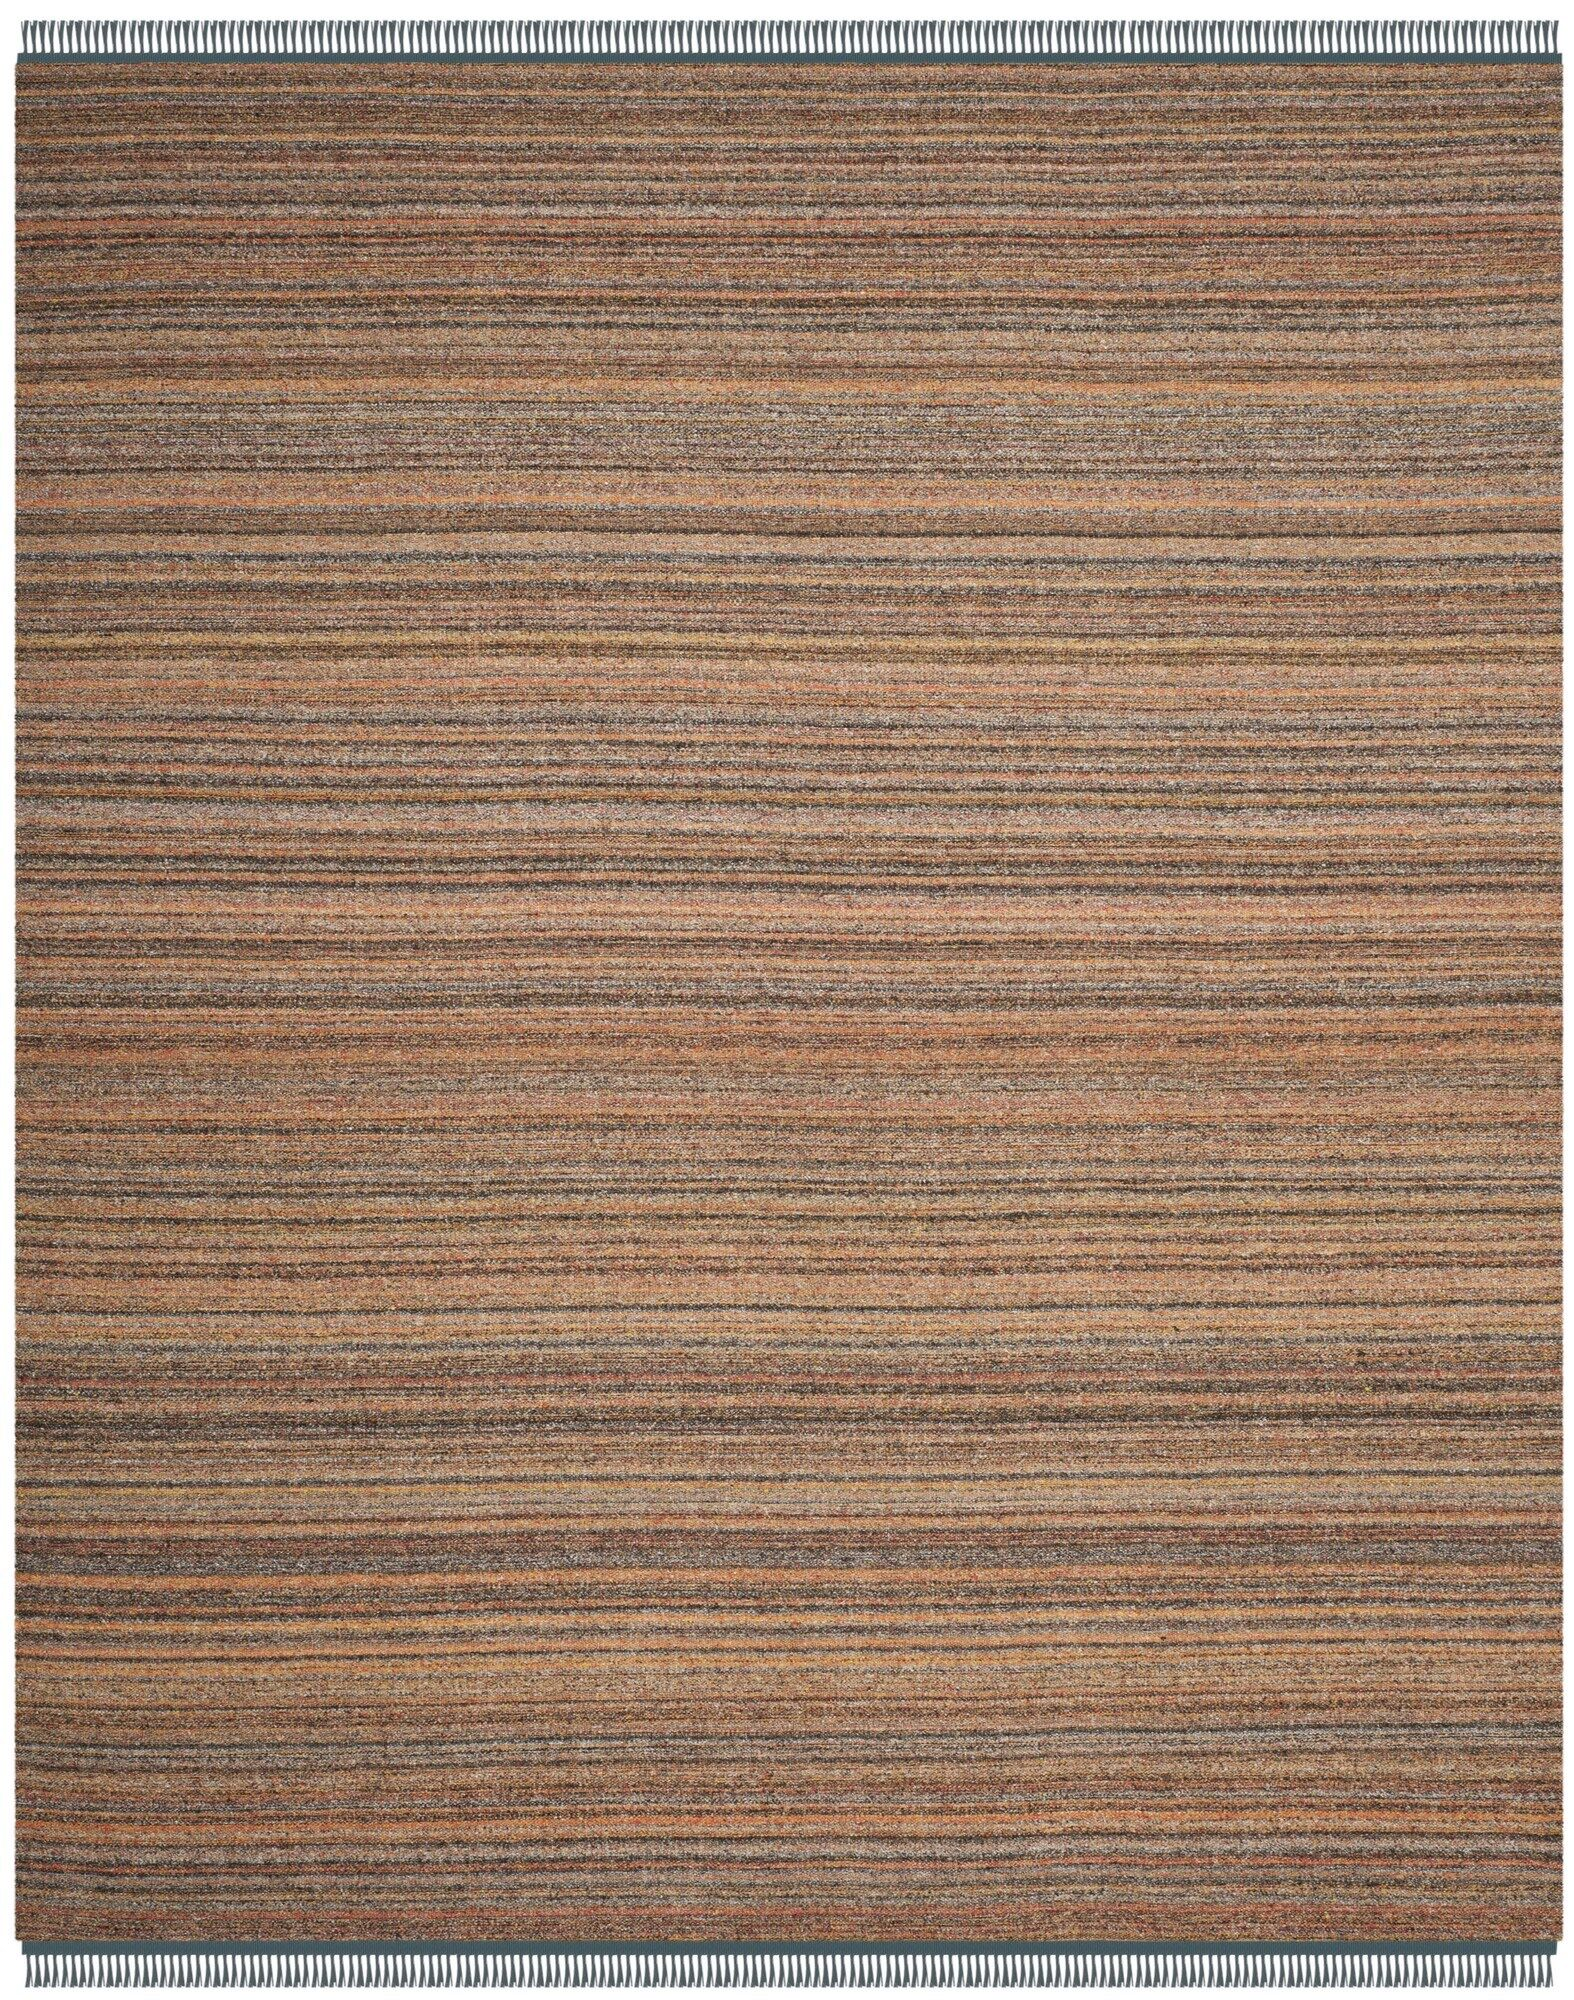 Sojourn Hand-Woven Orange/Blue Area Rug Rug Size: Rectangle 8' x 10'